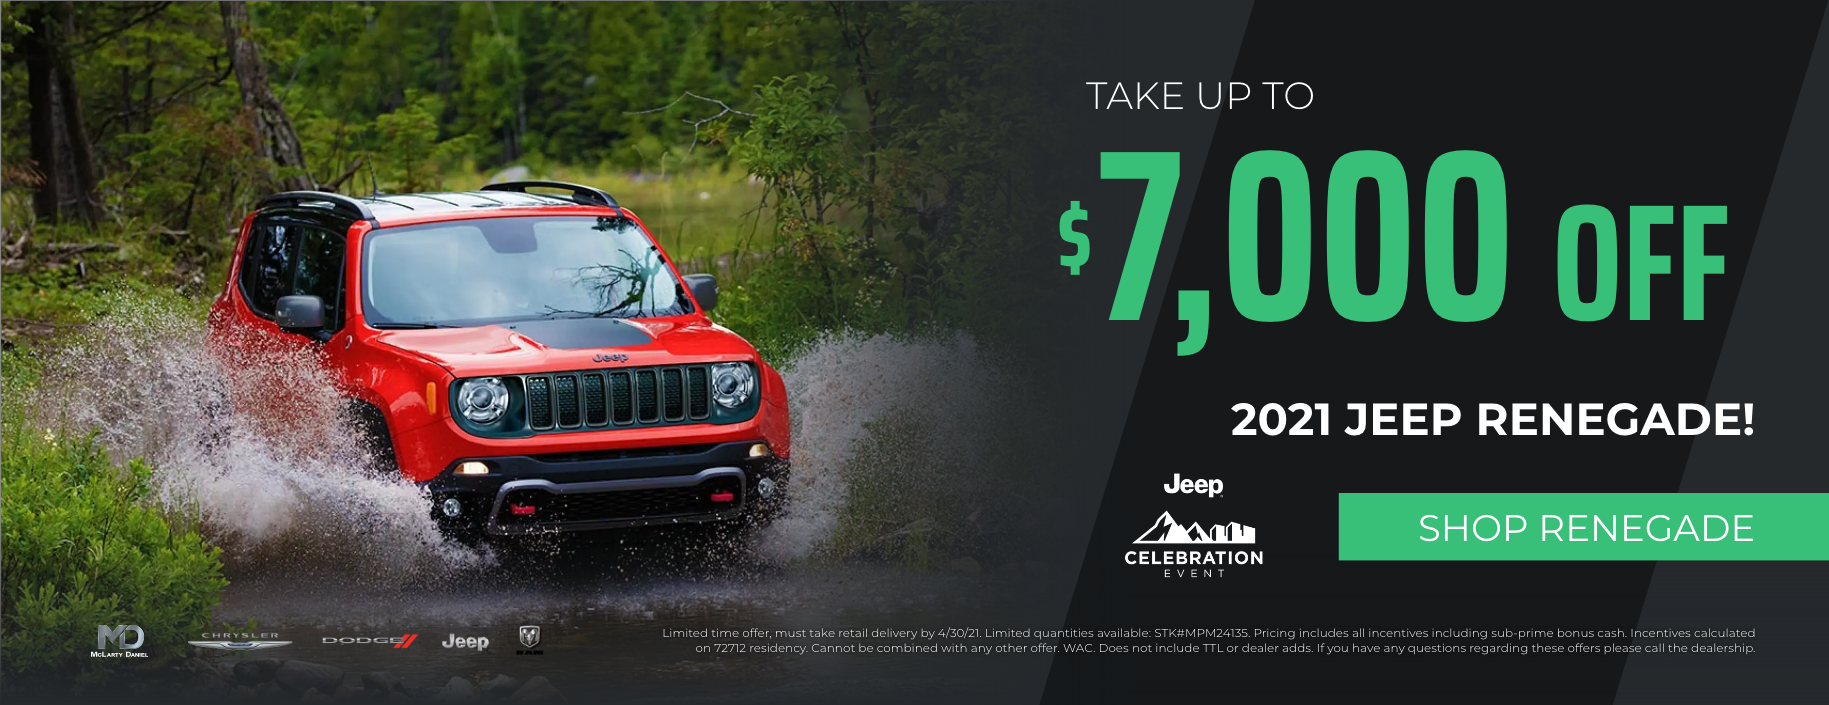 Take up to $7000 off 2021 Jeep Renegade